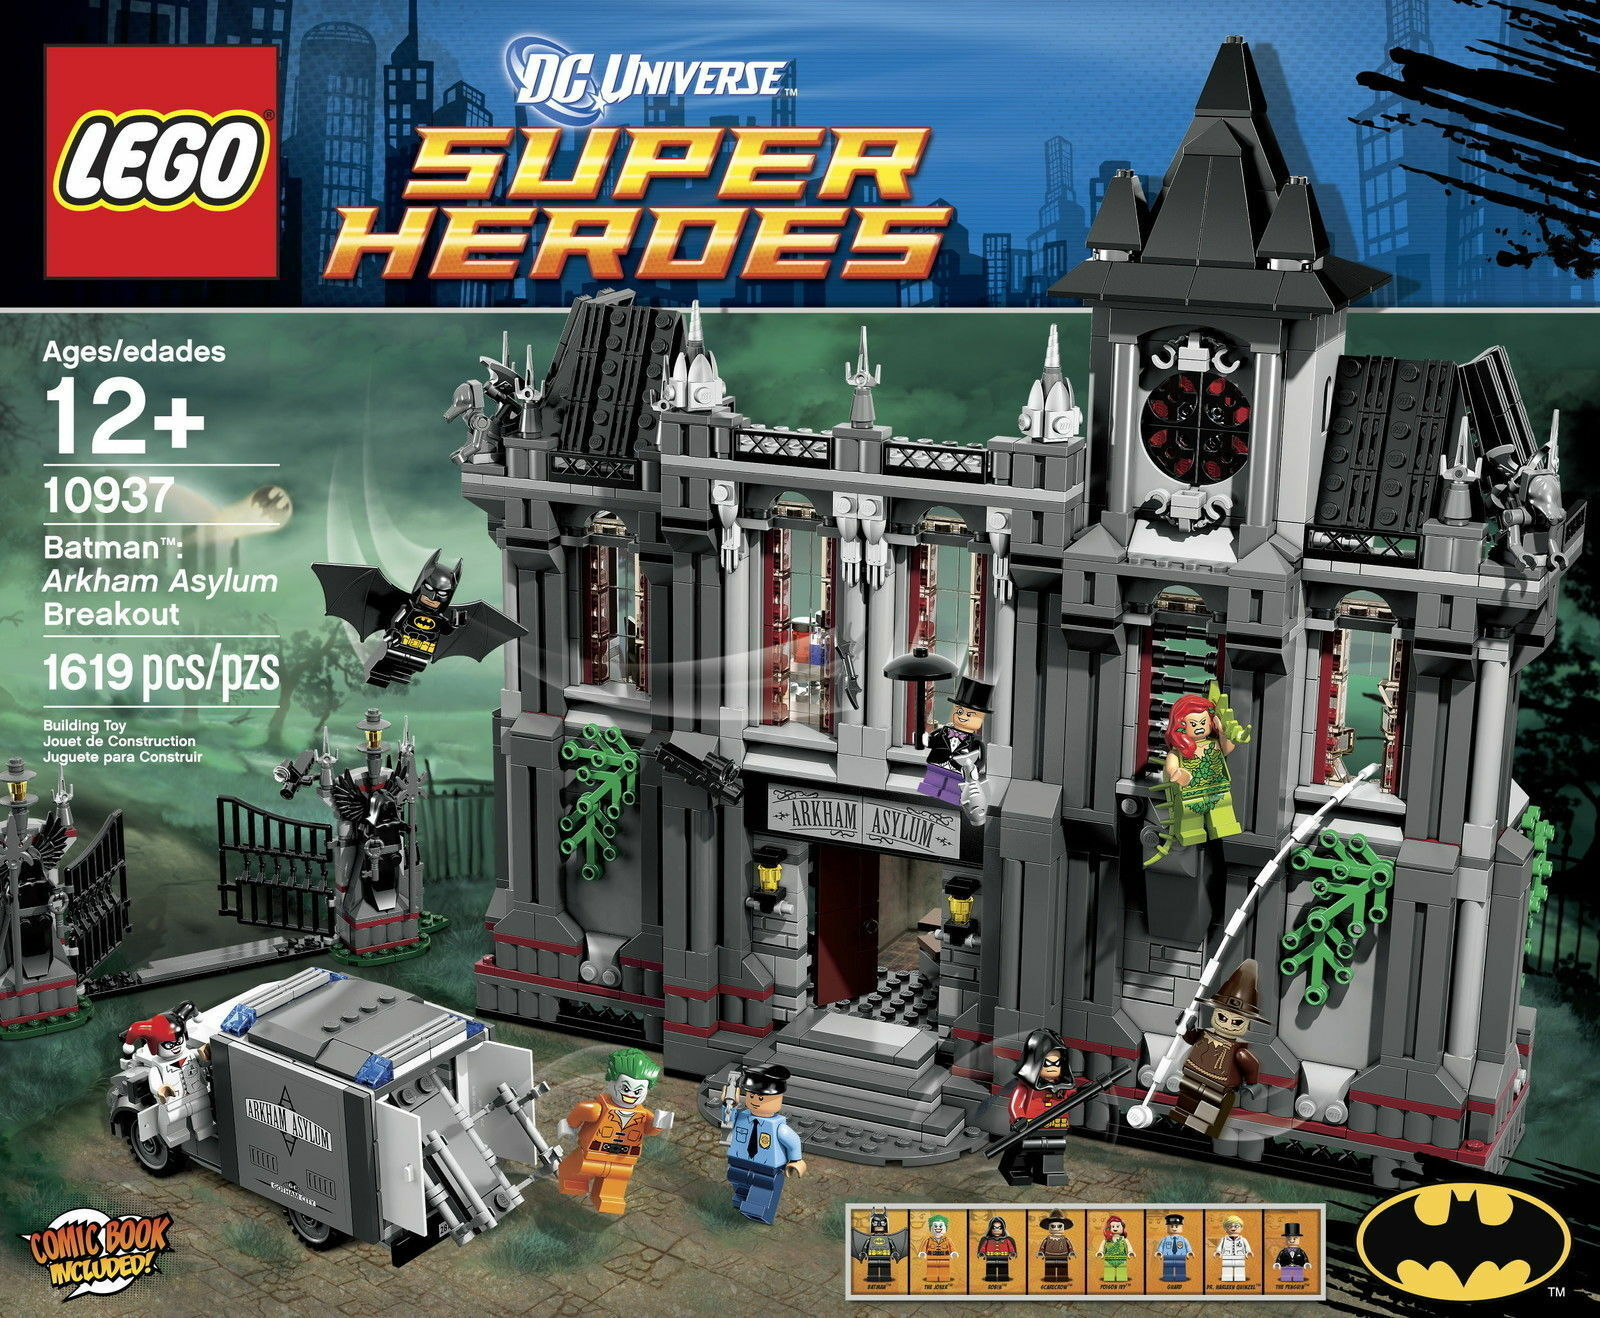 Top 10 Best LEGO Sets Ever